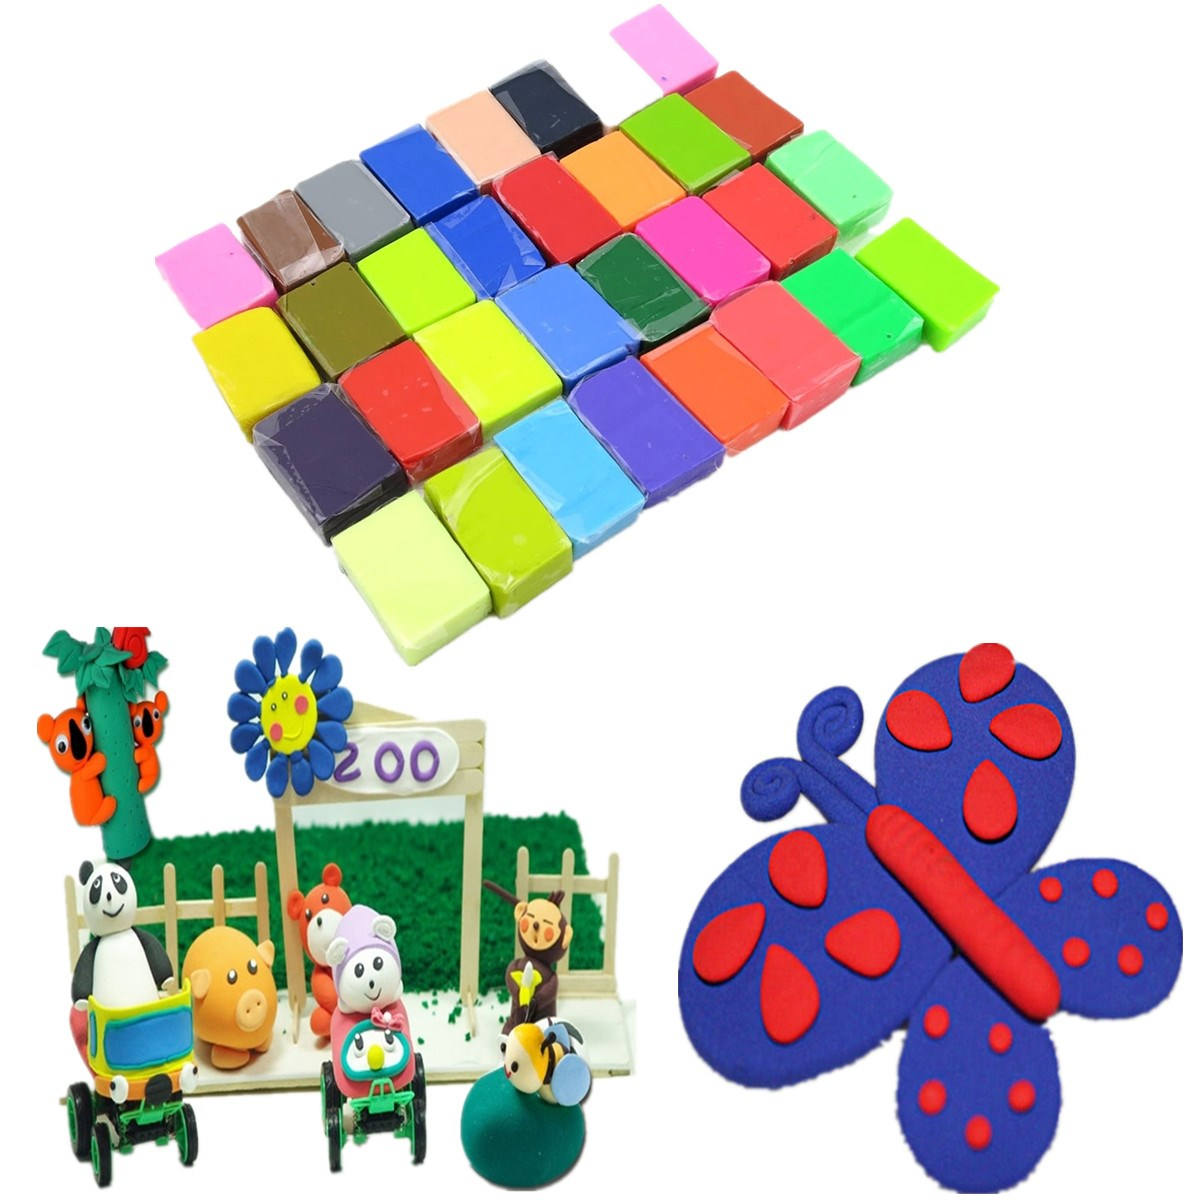 32 Colors Blocks Soft For Fimo Effect Polymer Modeling Clay Colorful Blocks Plasticine For Kids(China (Mainland))